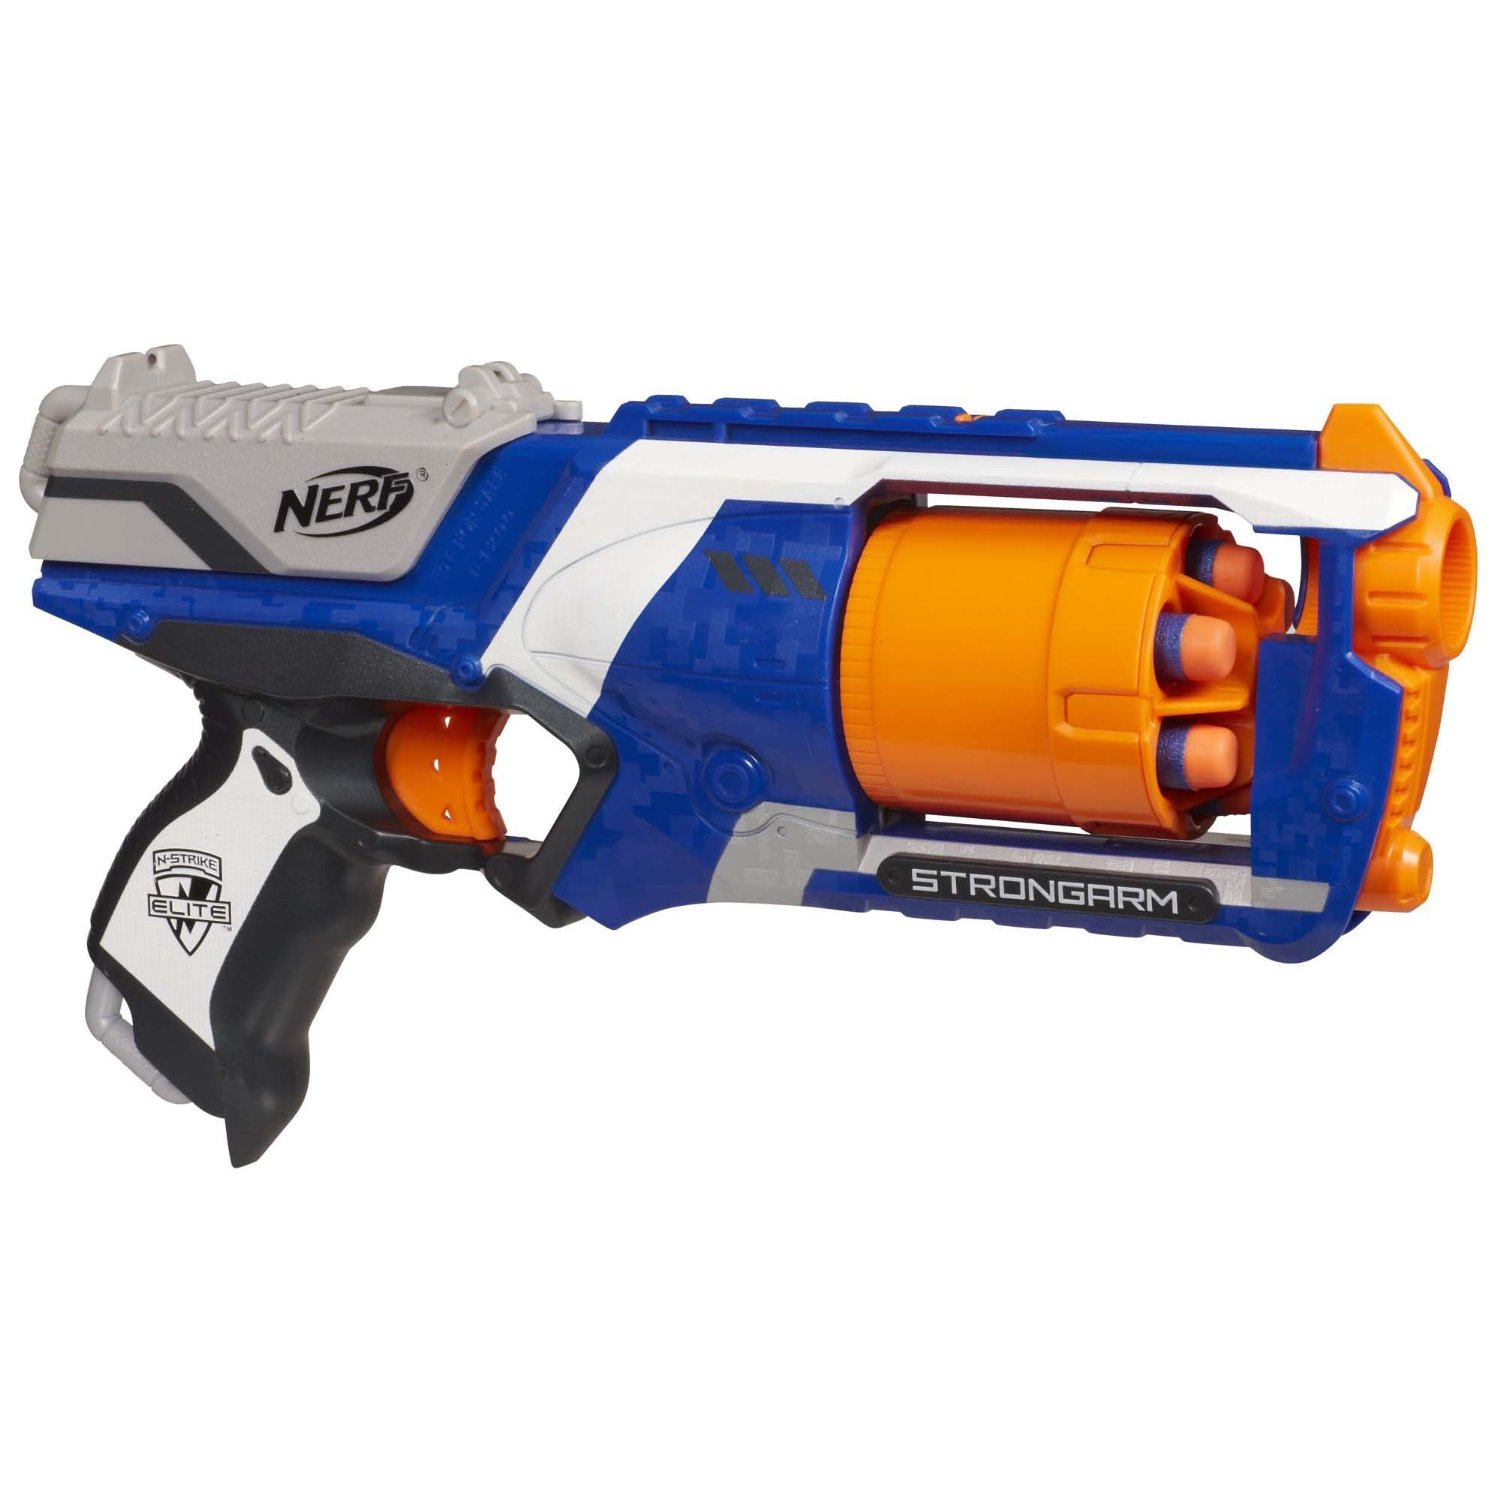 20 Awesome Nerf Games to Make and Play